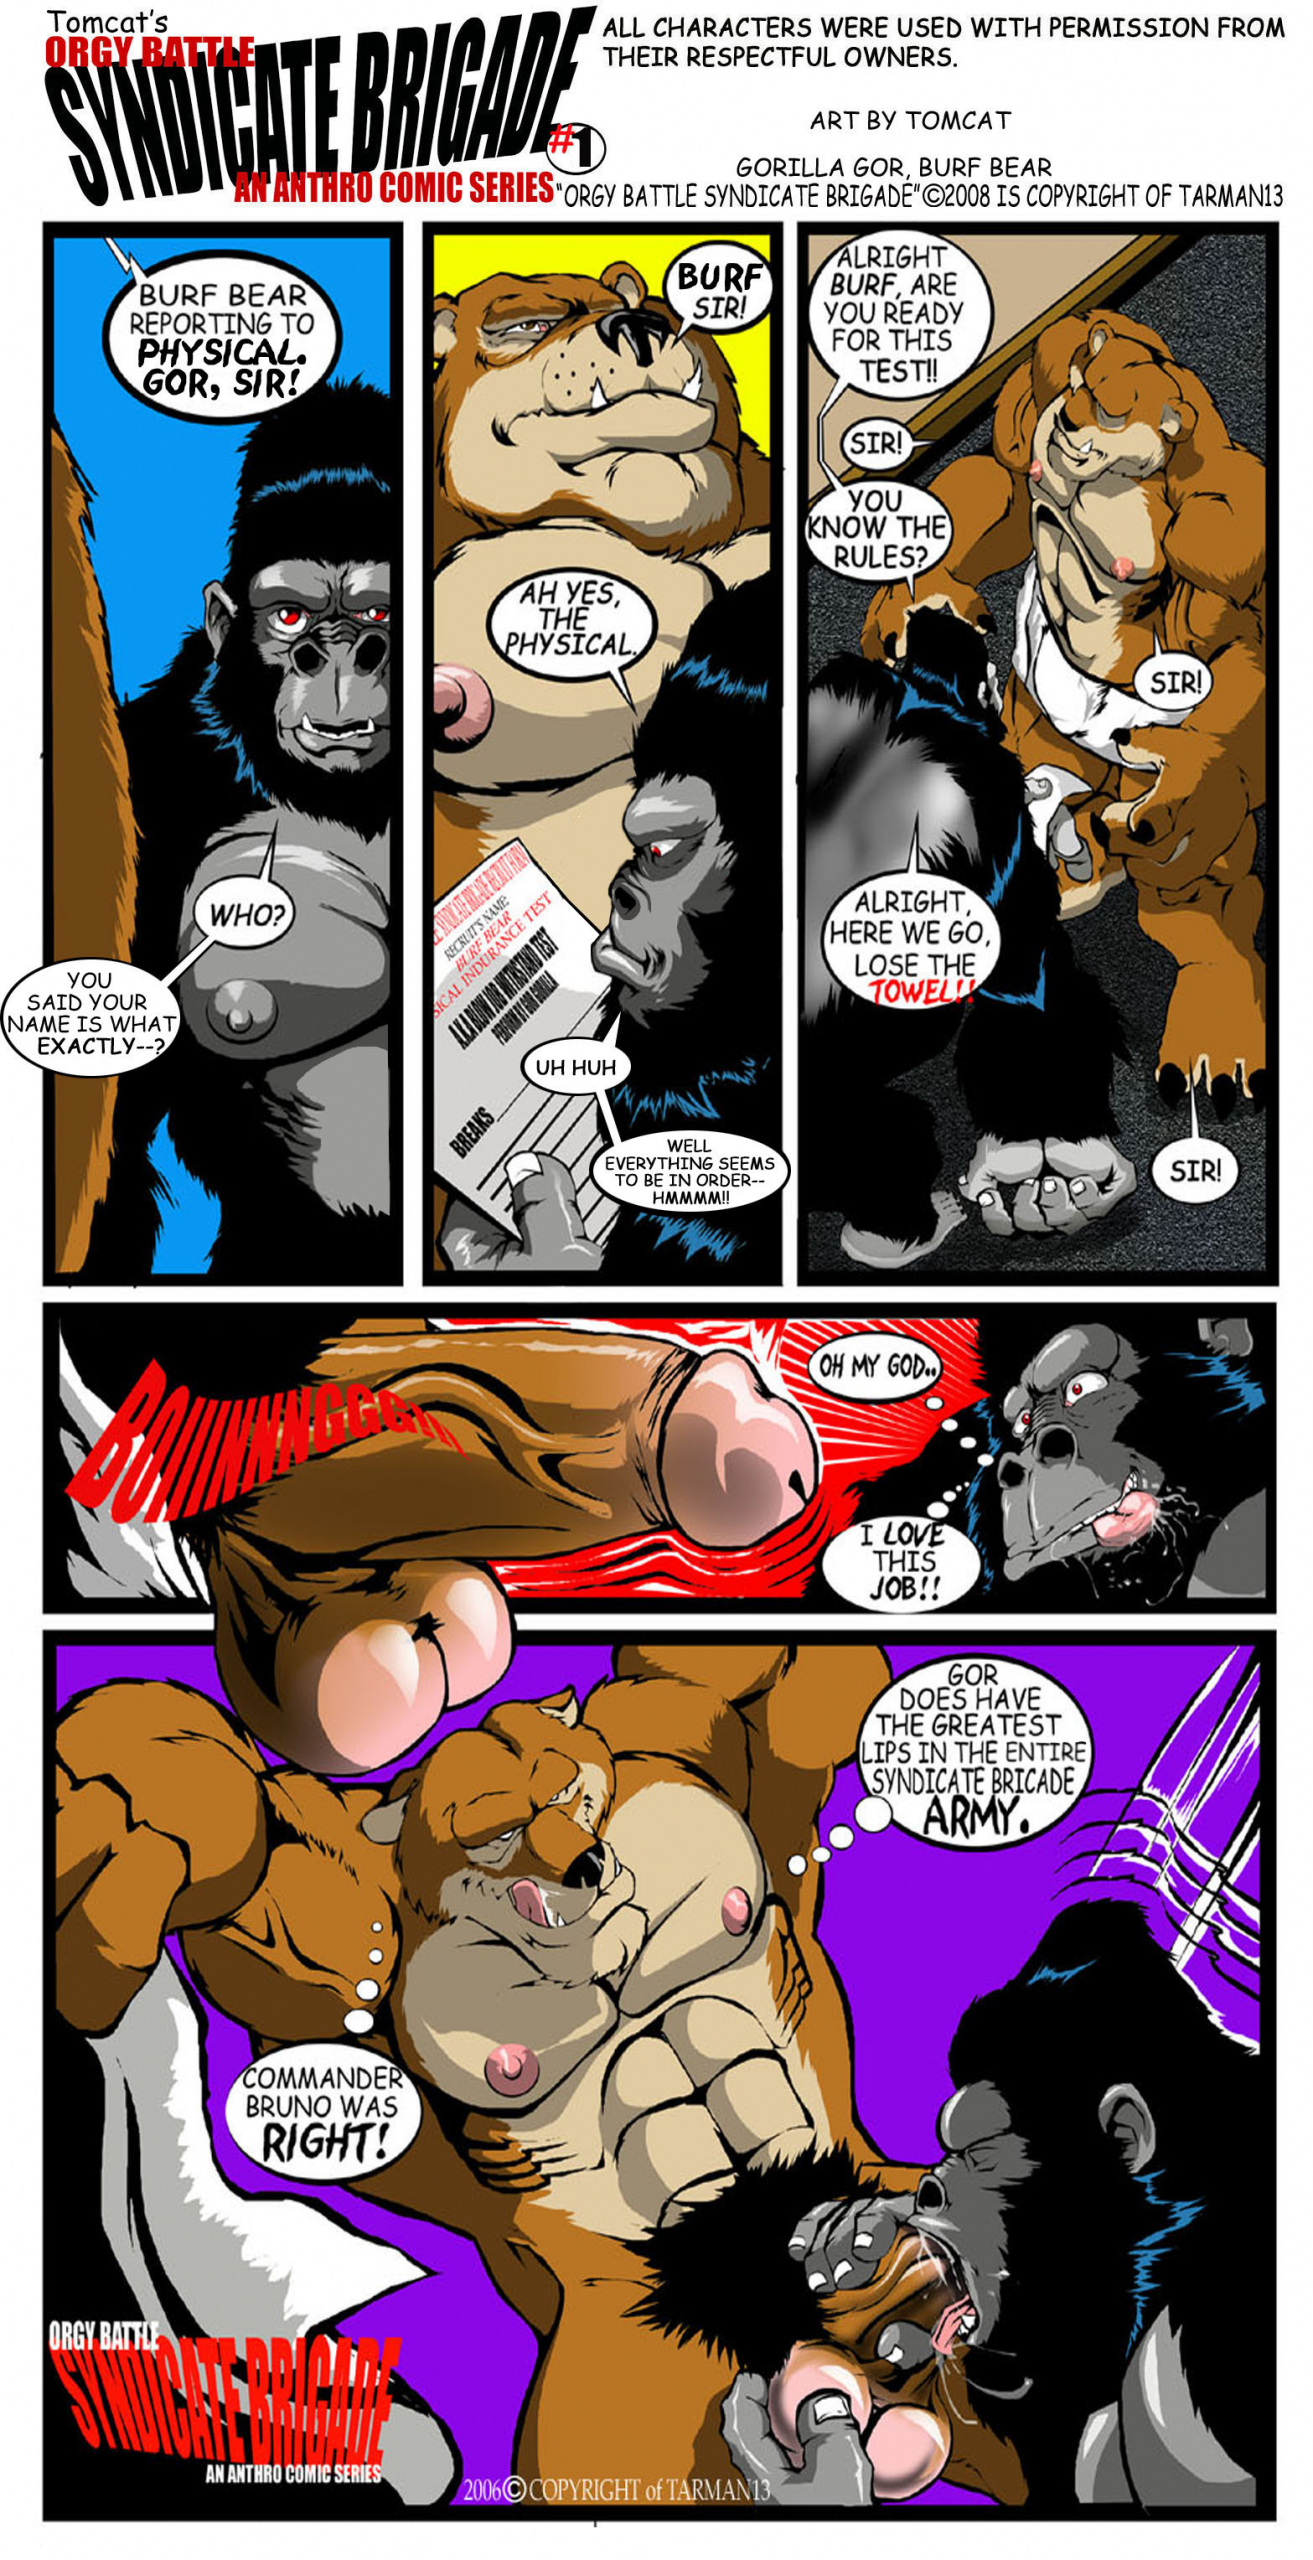 166810_Tomcat_syndicate_comic_page_1